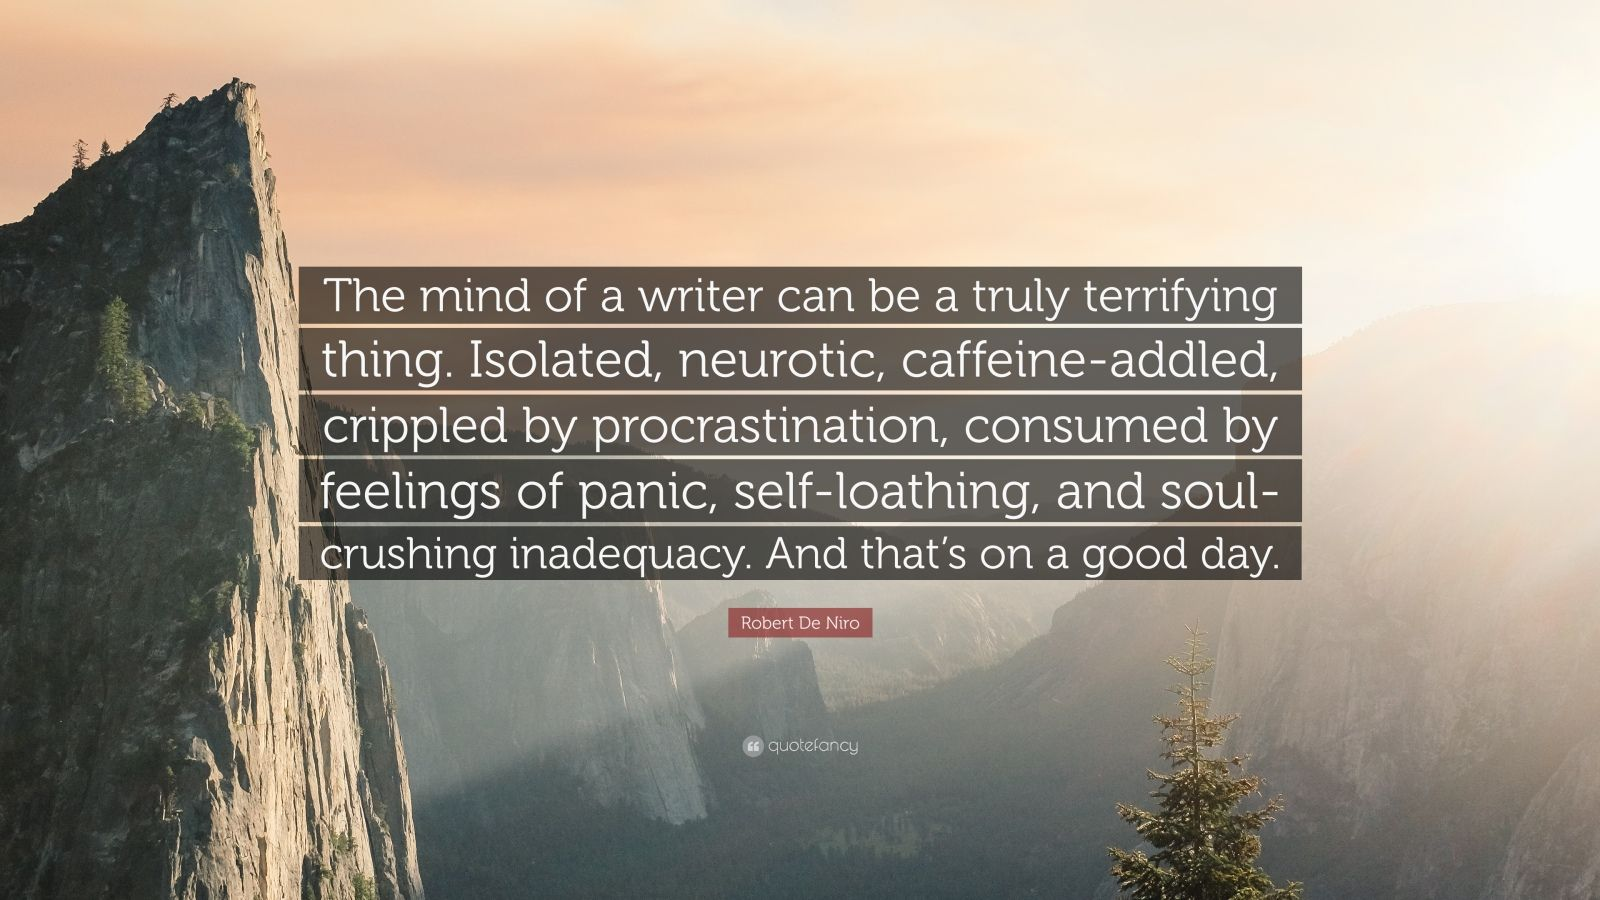 """Robert De Niro Quote: """"The mind of a writer can be a truly terrifying thing. Isolated, neurotic, caffeine-addled, crippled by procrastination, consumed by feelings of panic, self-loathing, and soul-crushing inadequacy. And that's on a good day."""""""